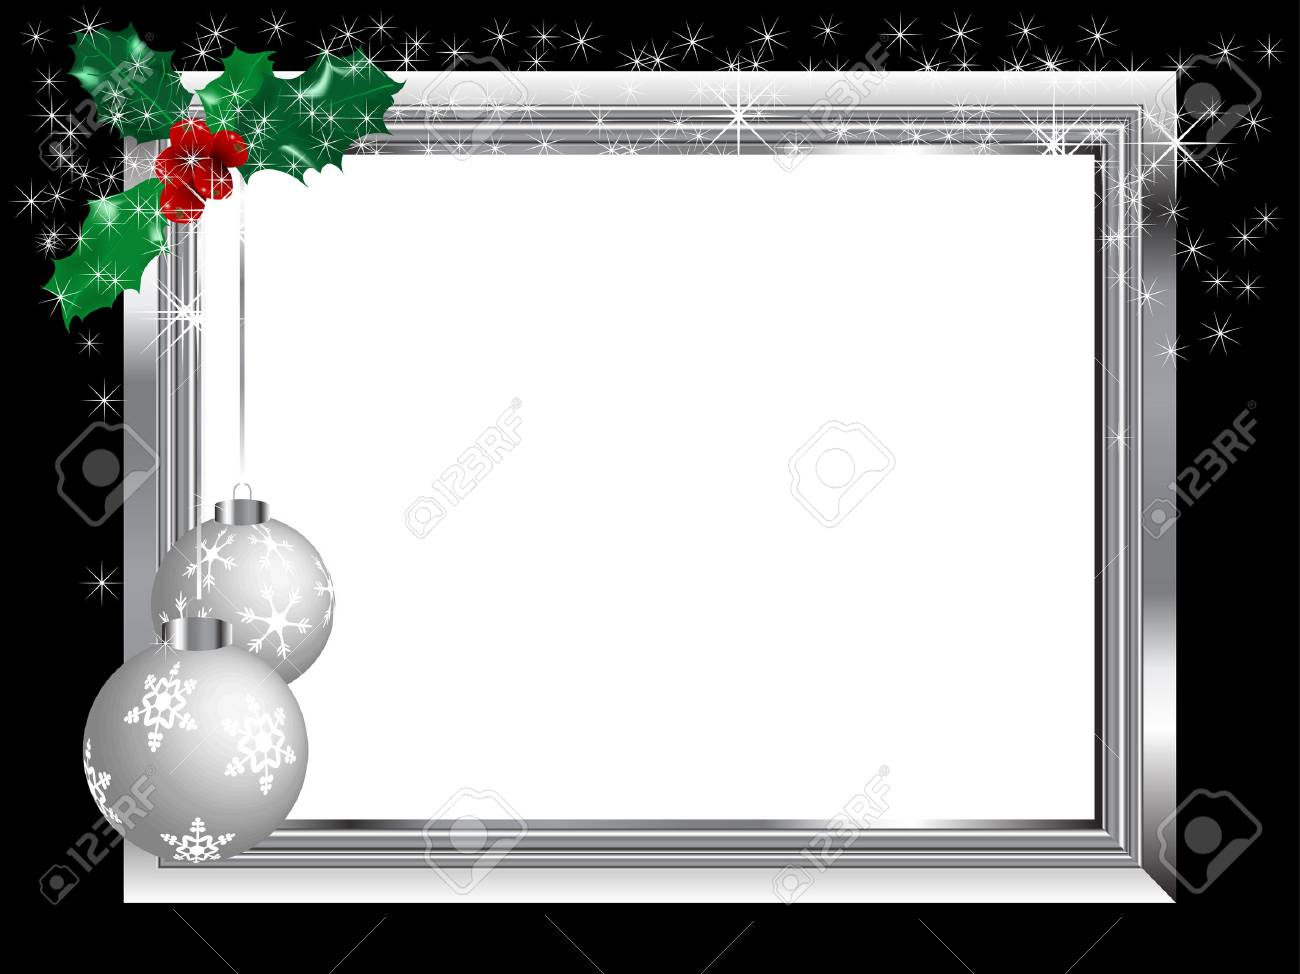 Christmas abstract background  with balls - vector illustration Stock Vector - 6011199